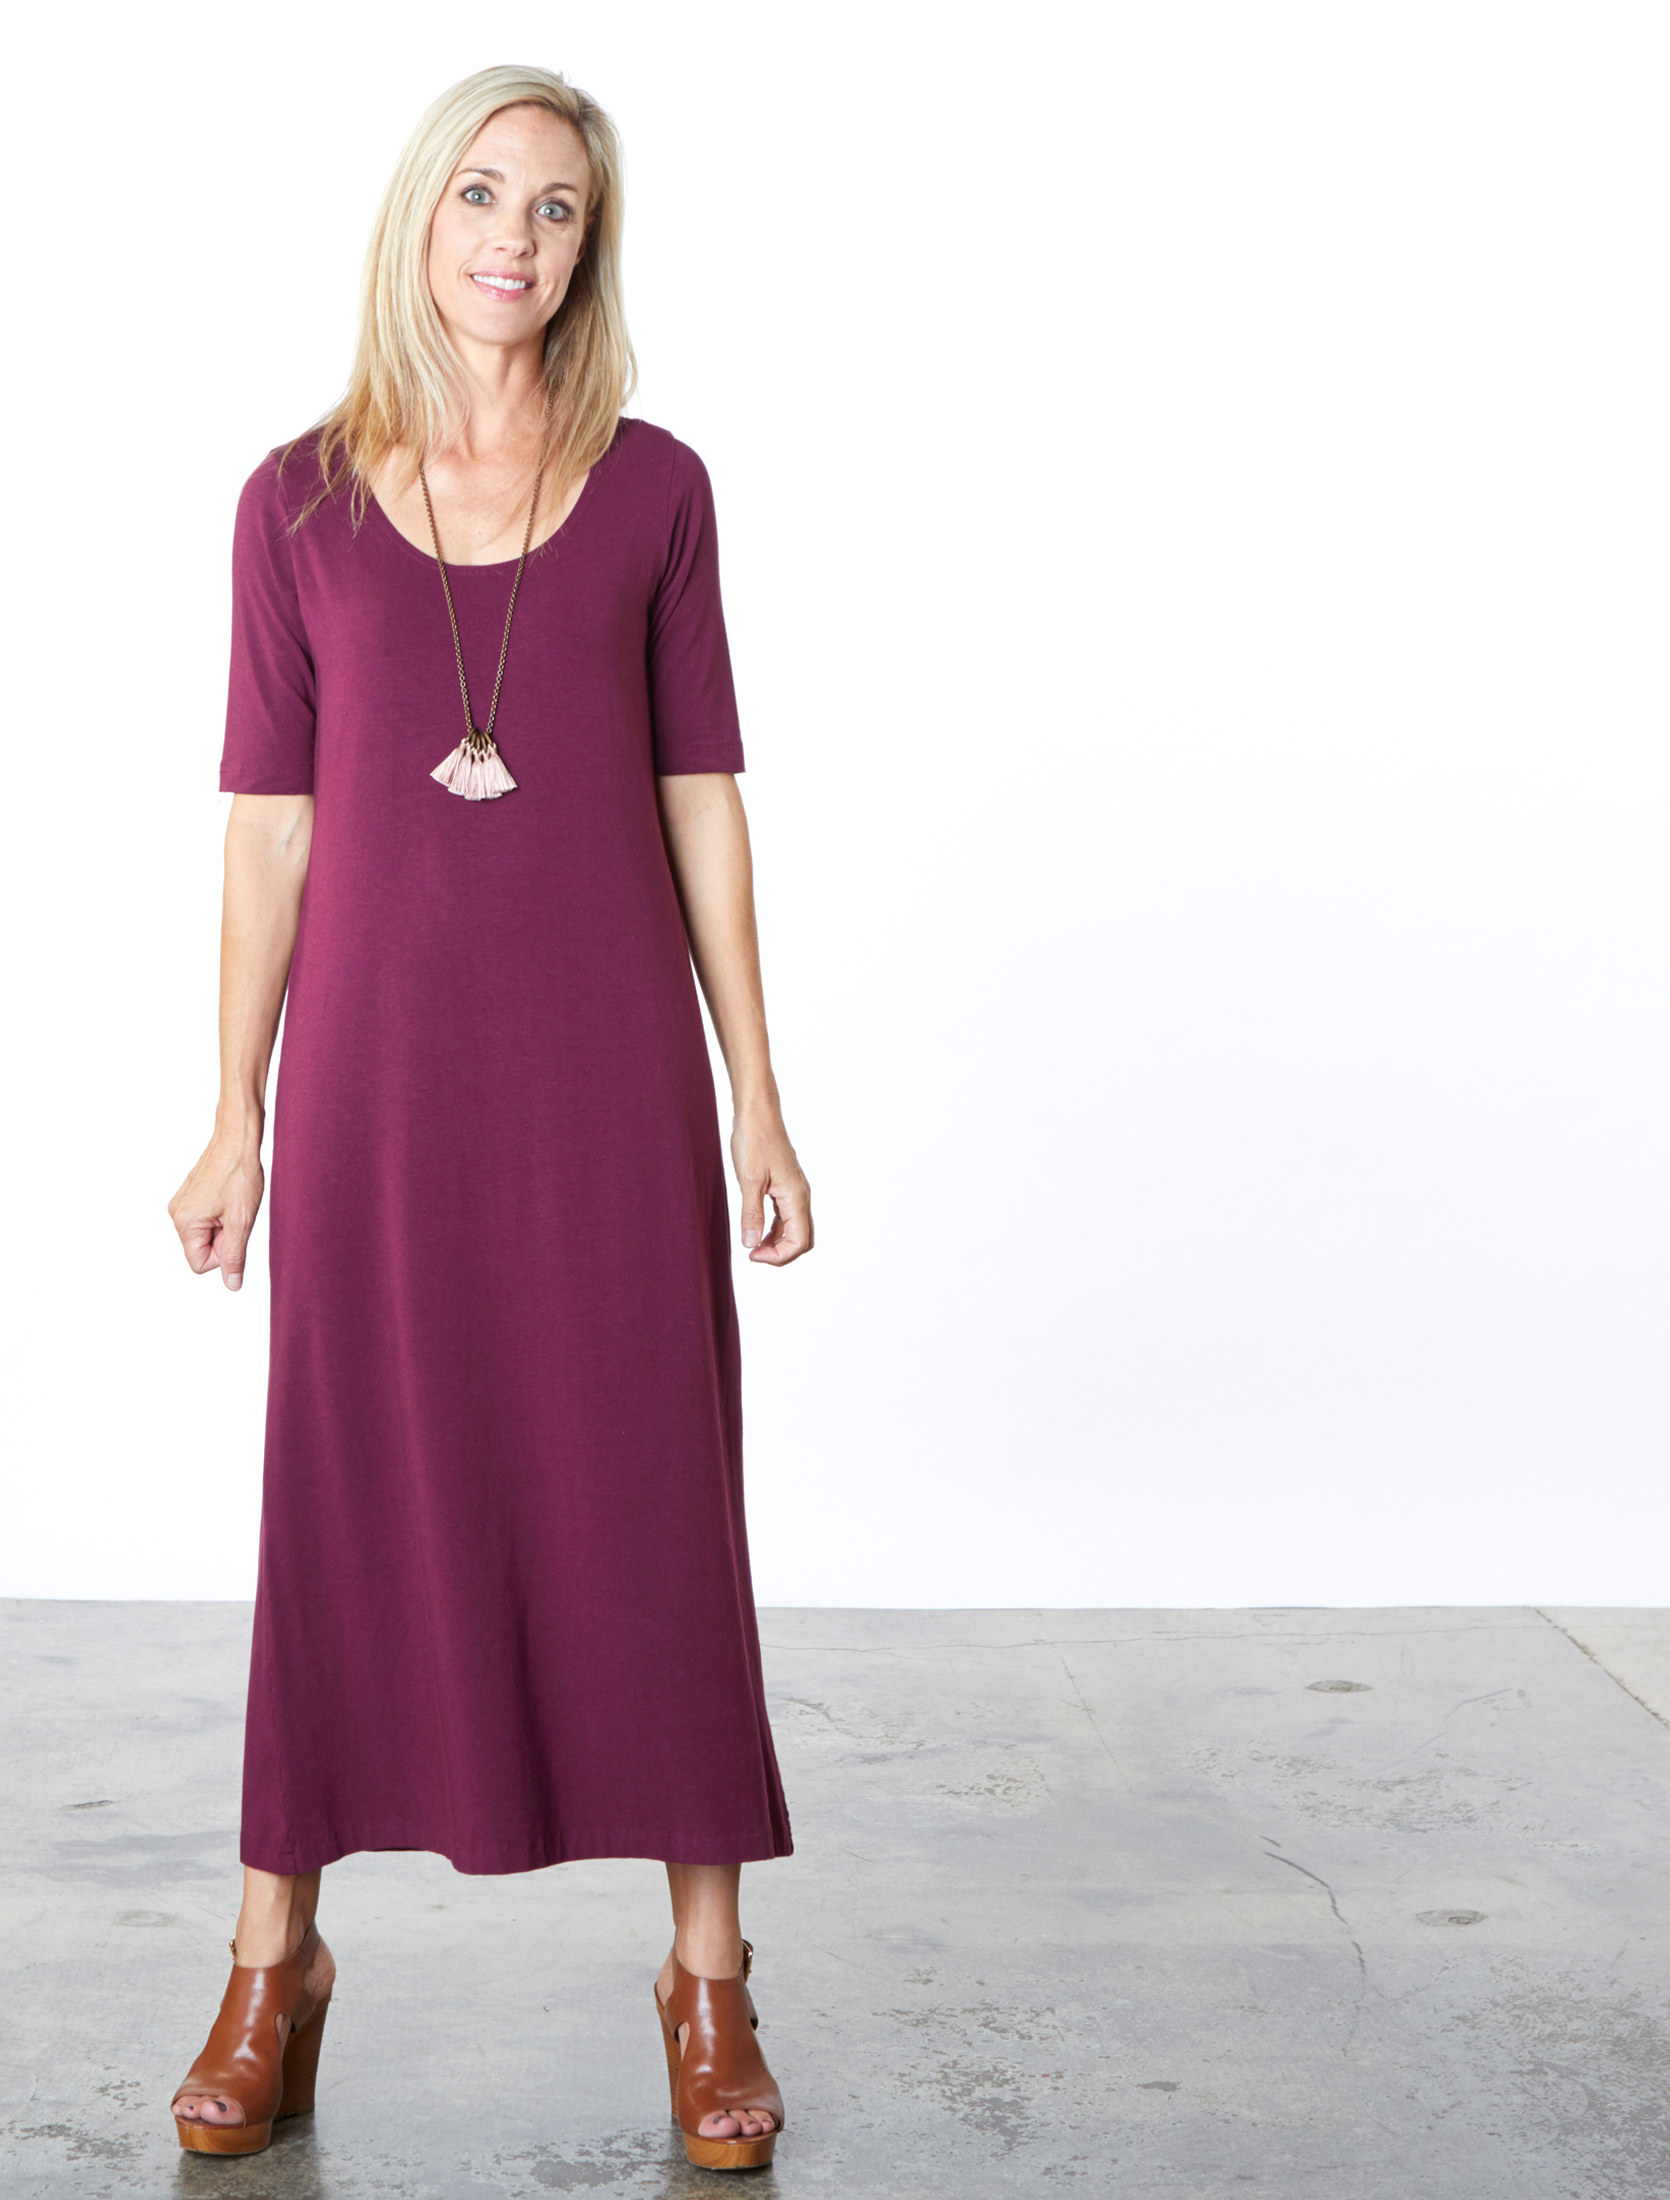 S/S Bobbi Dress in Mangosteen Bamboo Cotton